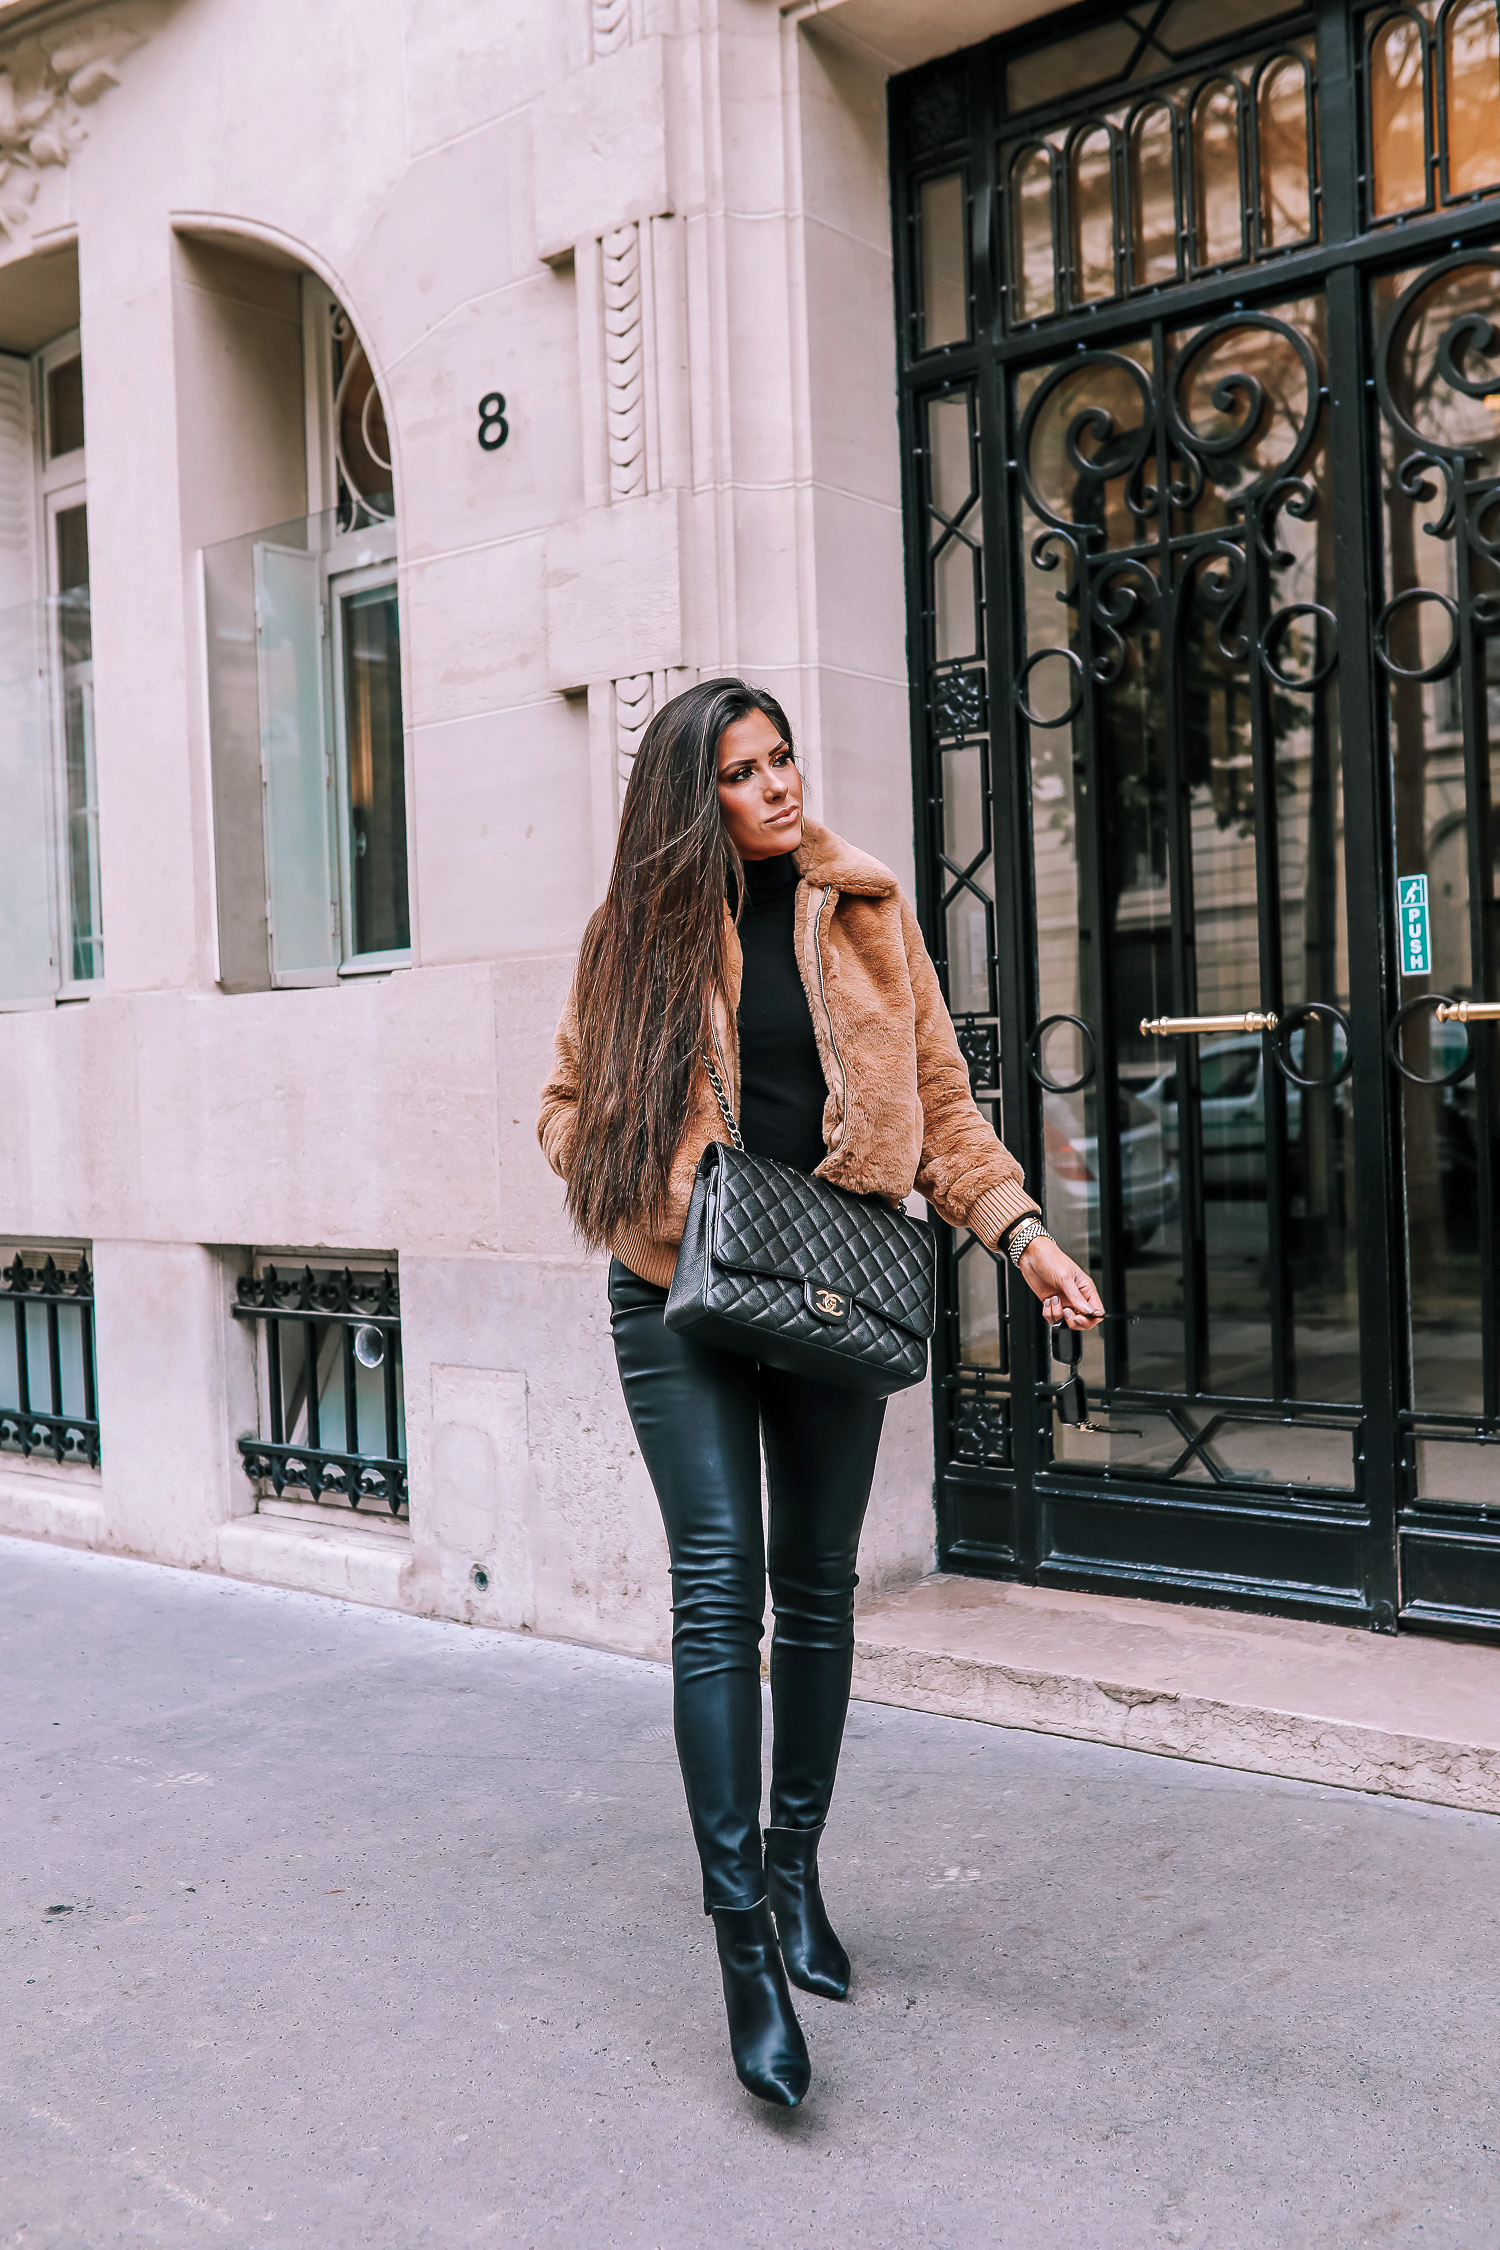 paris fall fashion 2019, fall fashion 2019, banana republic fall outfits 2019, paris outfit ideas fall and winter, what to wear in paris in october november, emily ann gemma-2 | paris fall fashion 2019, fall fashion 2019, banana republic fall outfits 2019, paris outfit ideas fall and winter, what to wear in paris in october november, emily ann gemma-2 | Do You Like Neon Or Neutrals?! Two Everyday Fall Outfits by popular Oklahoma fashion blog, The Sweetest Thing: image of a woman outside in Paris and wearing a Banana Republic Faux Fur Bomber, Banana Republic Merino-Blend Funnel-Neck Sweater, and Banana Republic High-Rise Skinny Coated Jean.